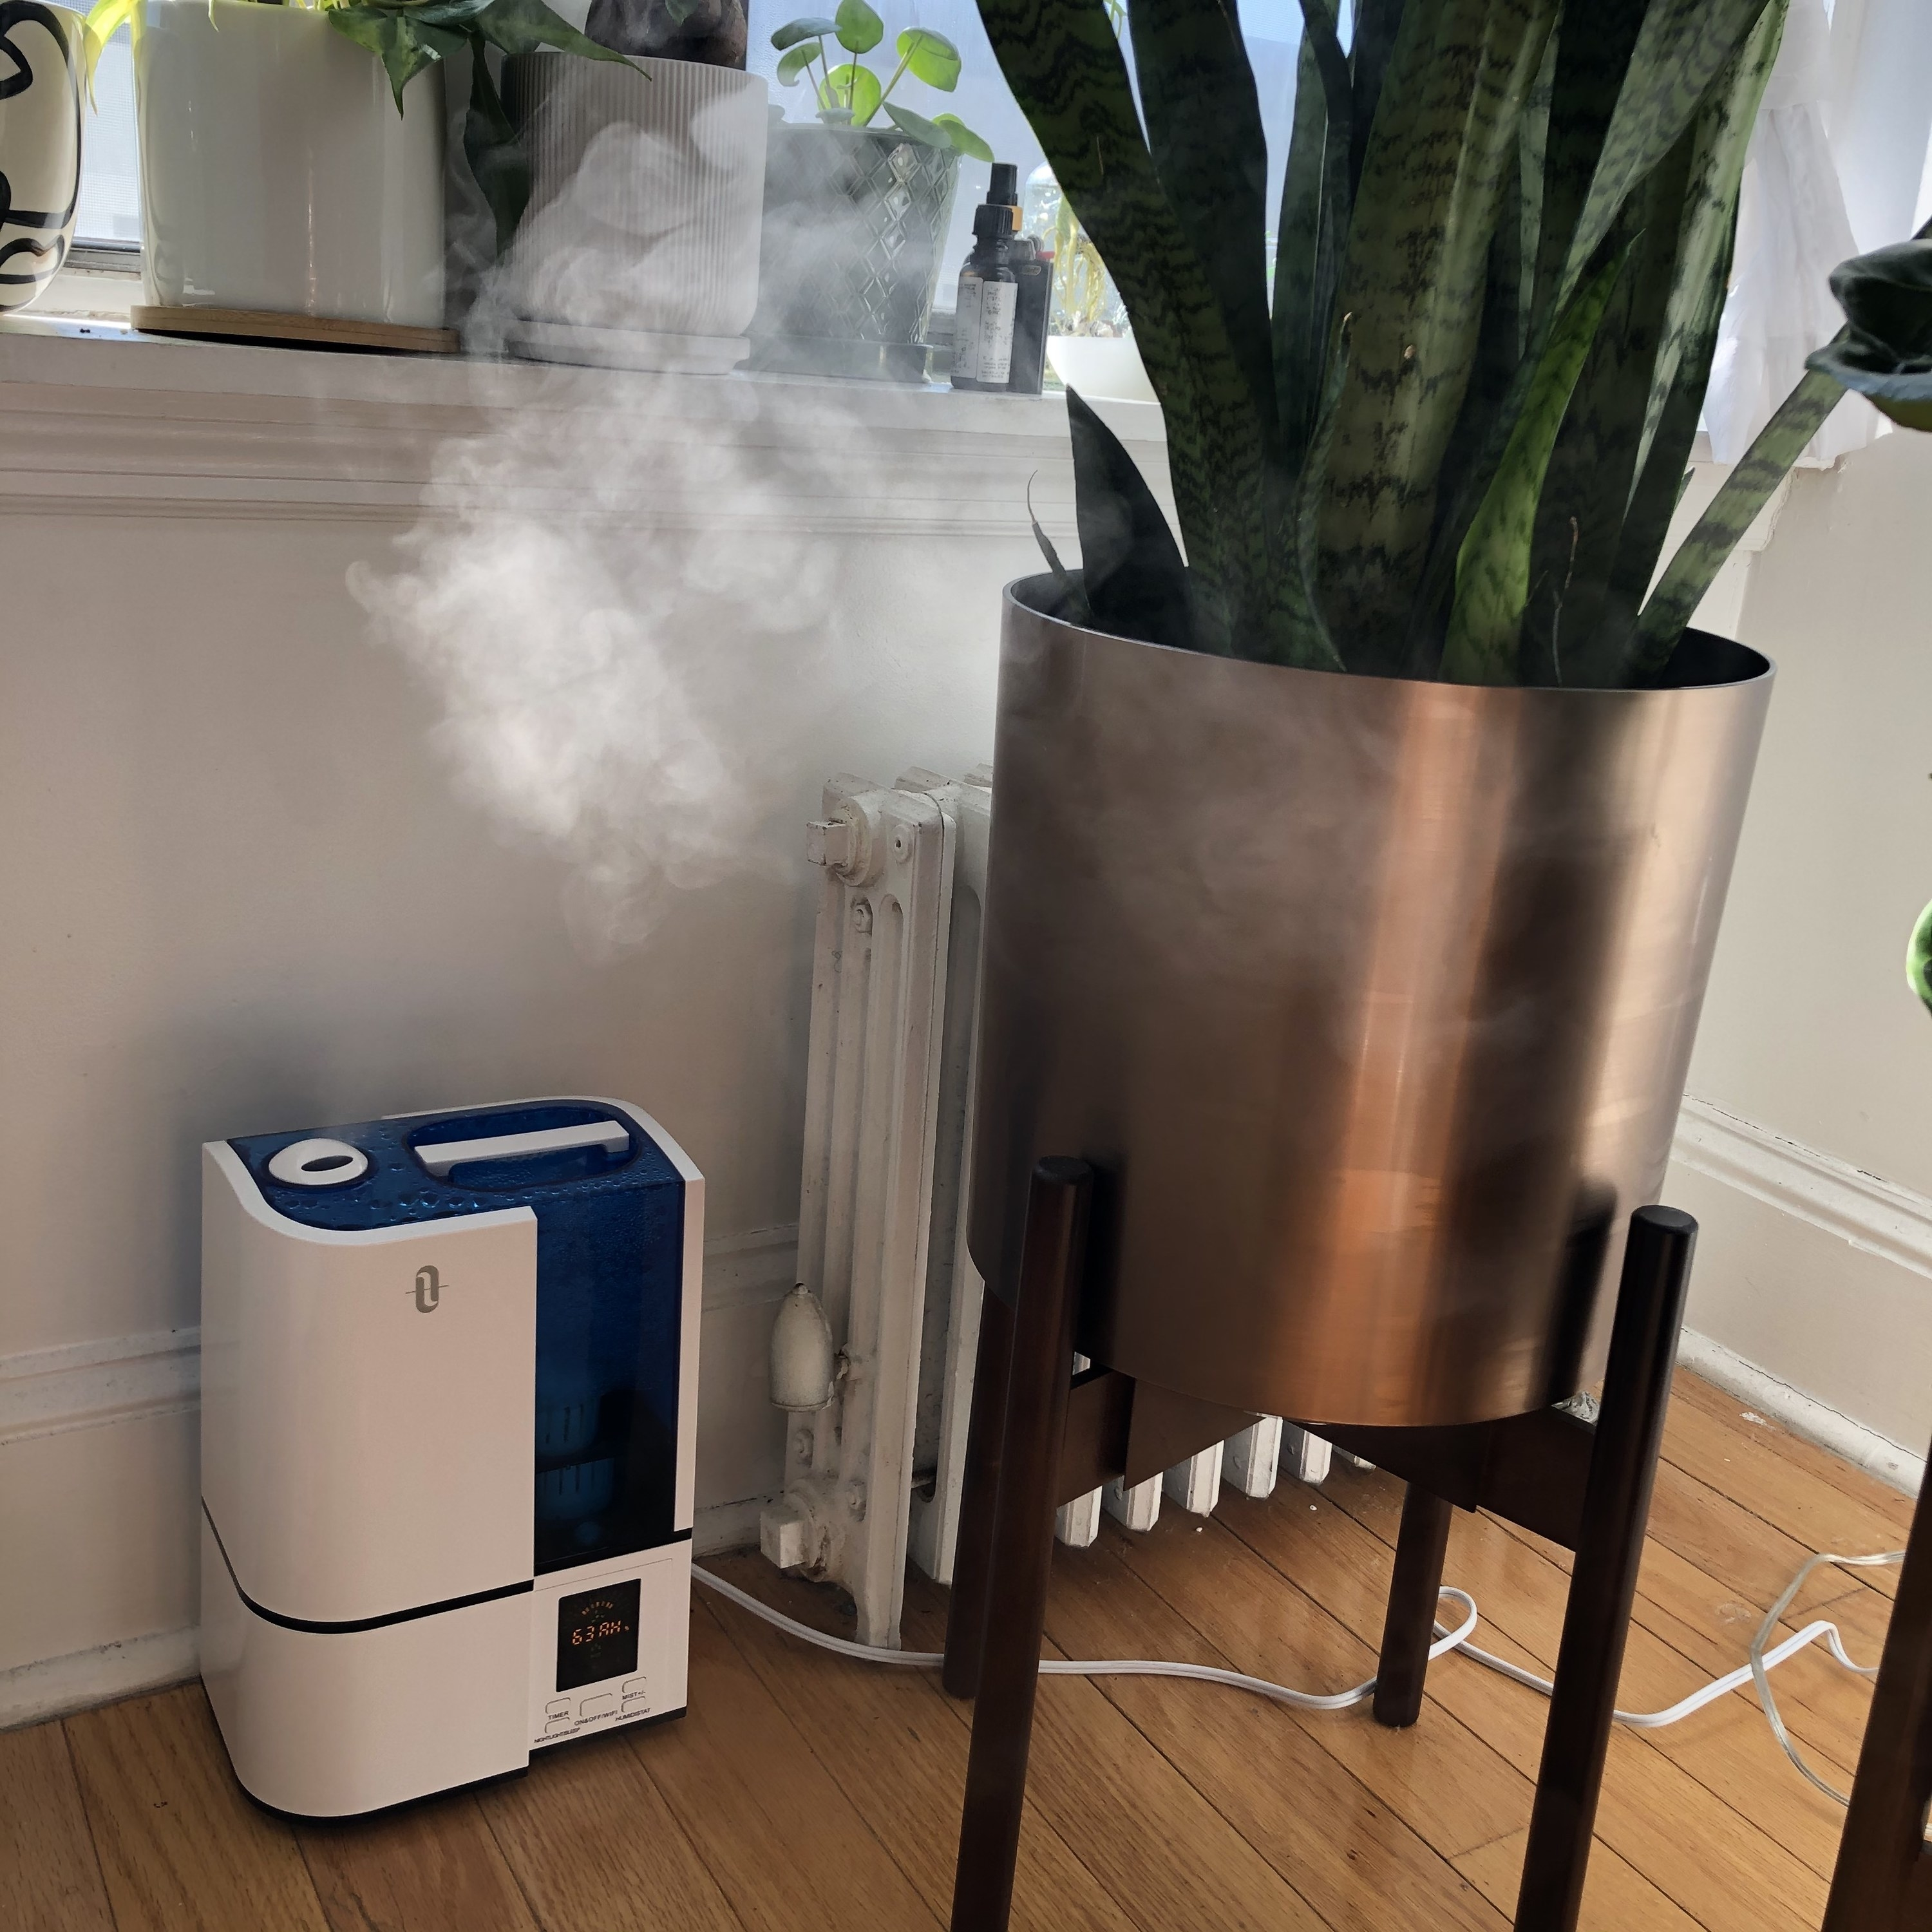 The humidifier on low